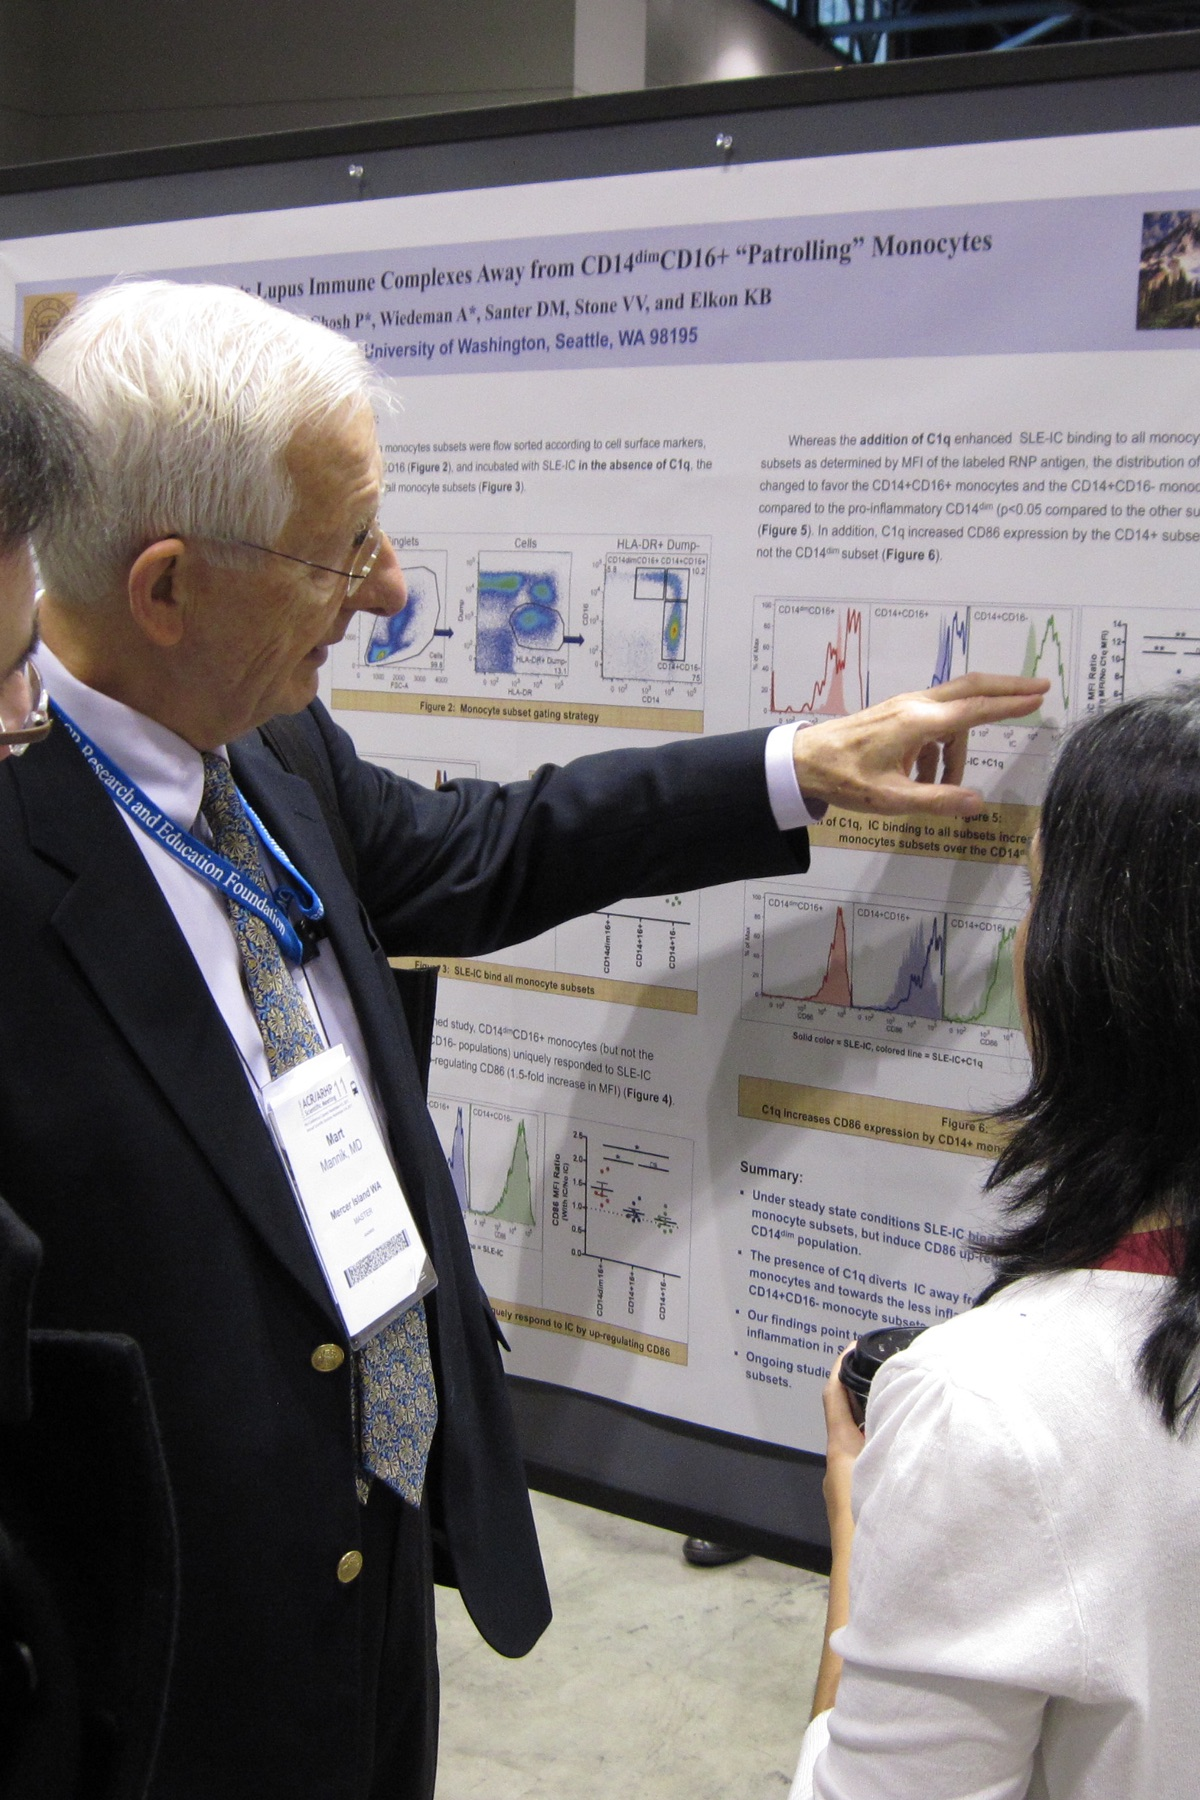 Mart Mannik at ACR/ARHP Meeting in 2011